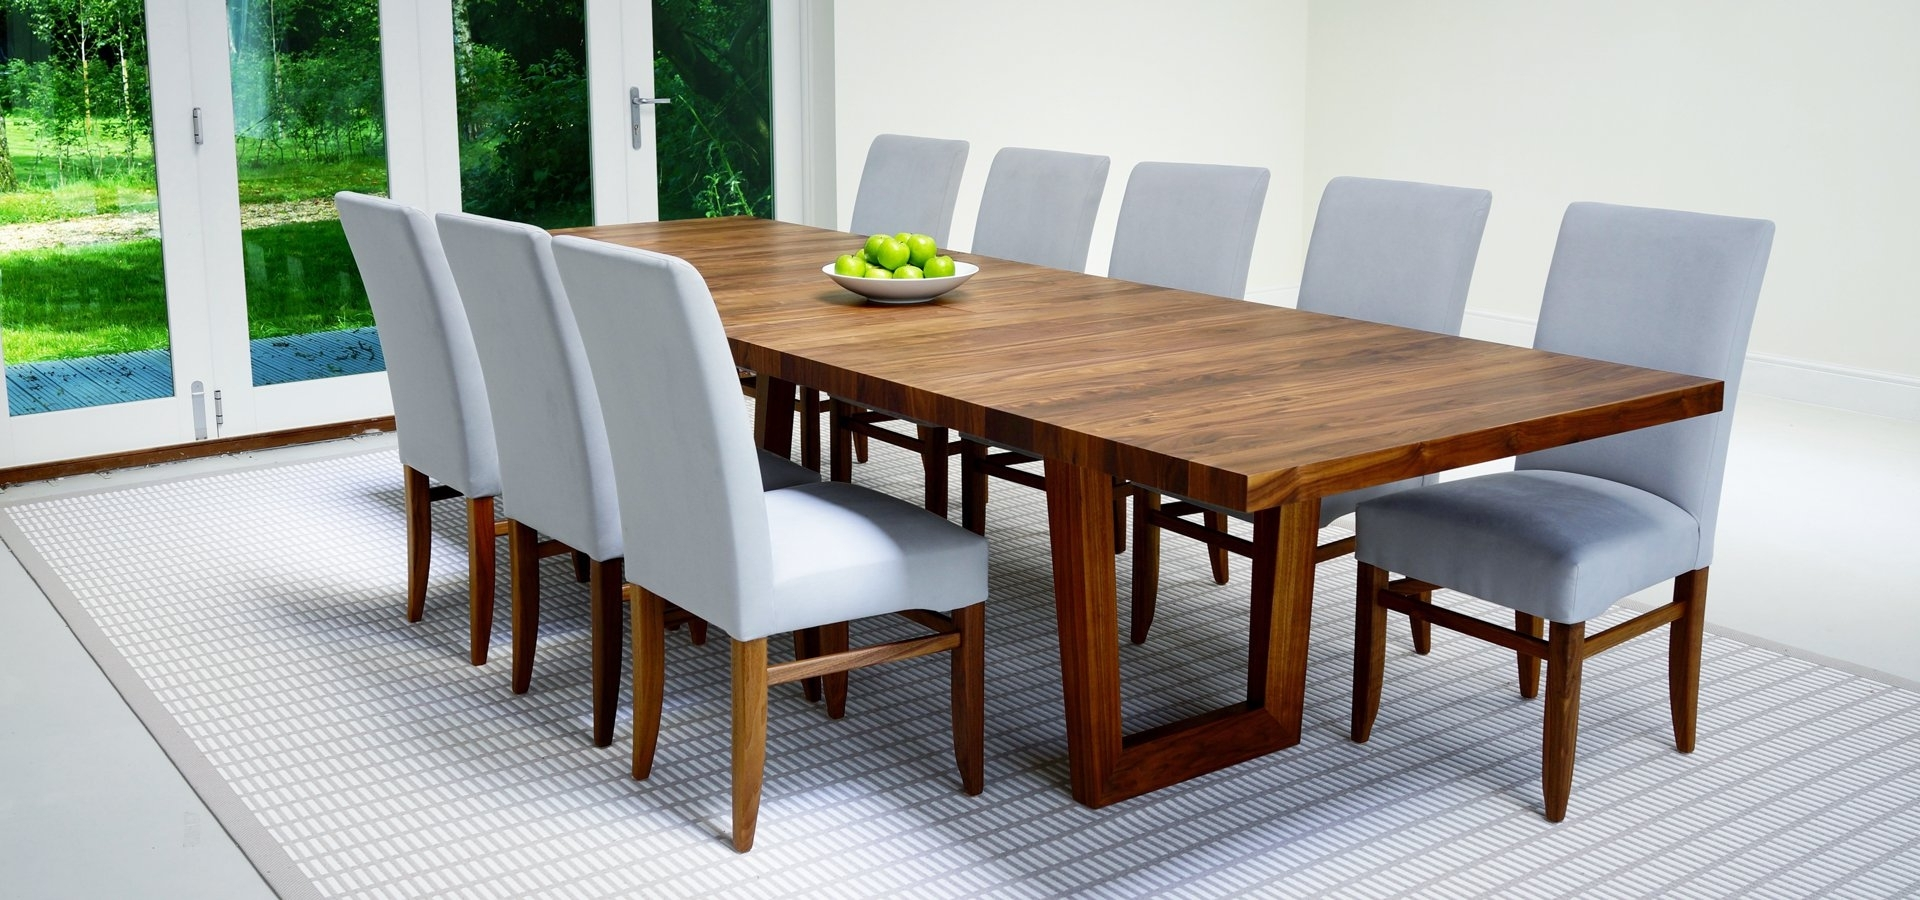 Best And Newest Contemporary Dining Tables & Furnitureberrydesign (View 20 of 25)